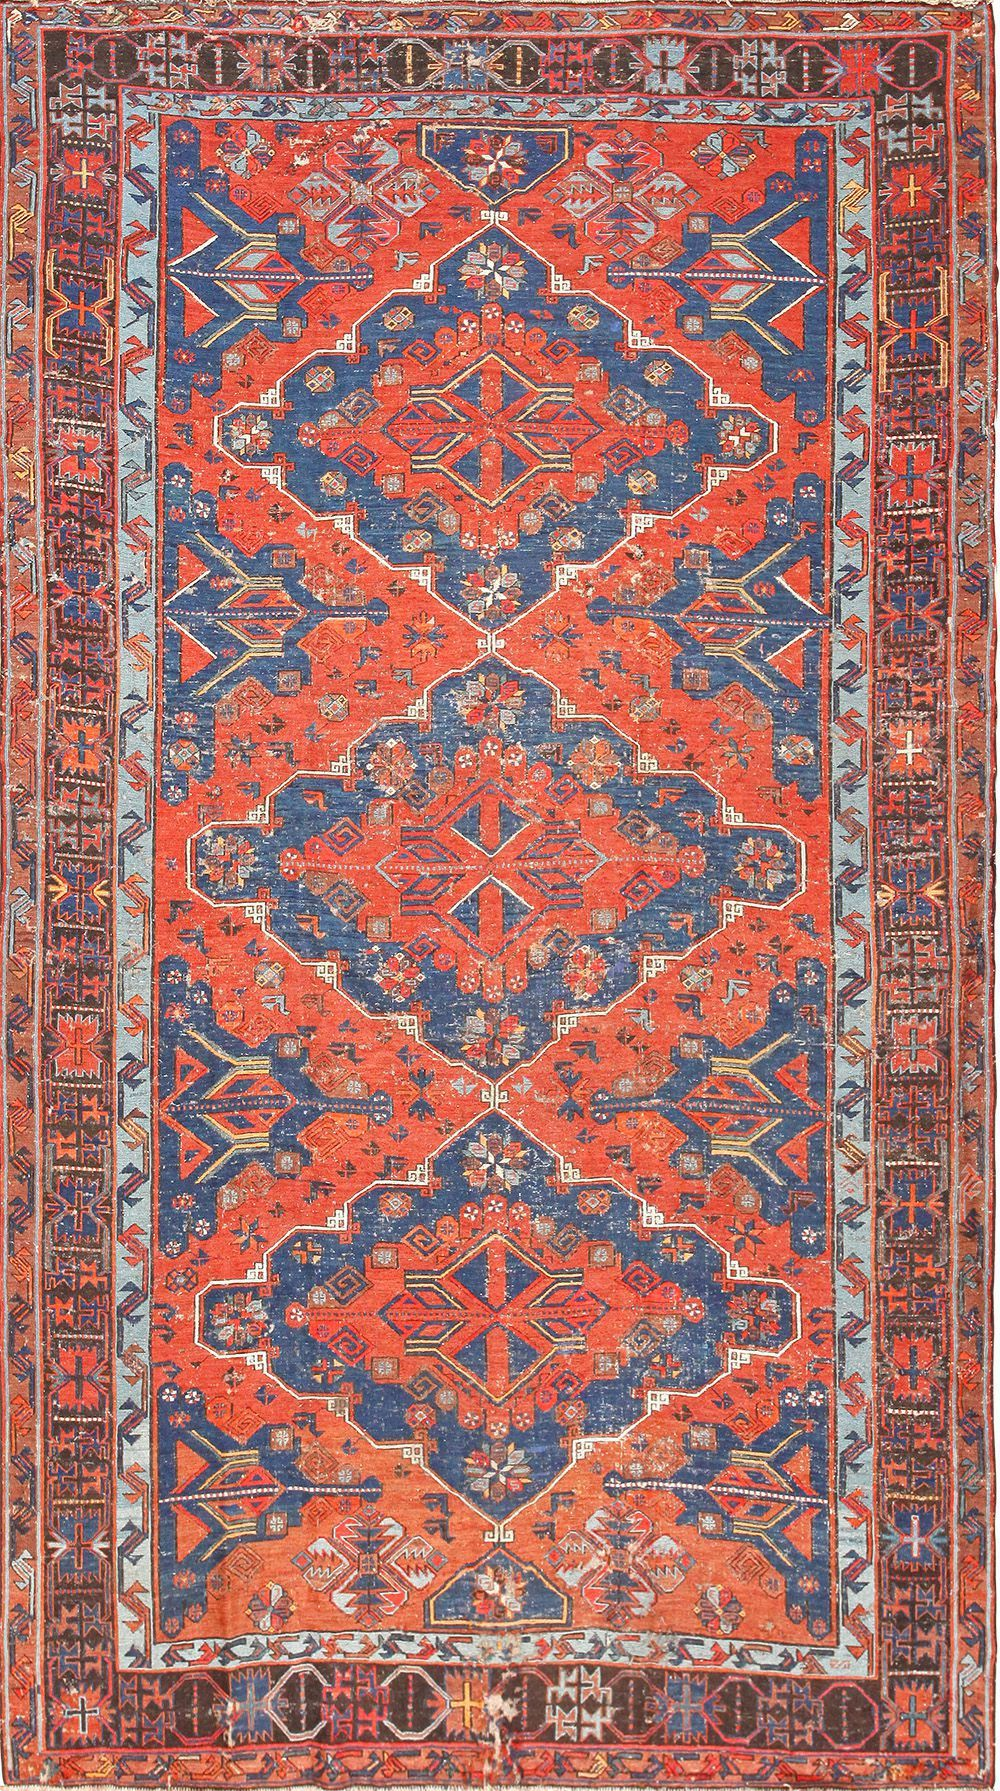 Click Here To View This Gorgeous Three Medallion Room Sized Antique Tribal Caucasian Soumak Rug By Nazmiyal Rugs In New York City